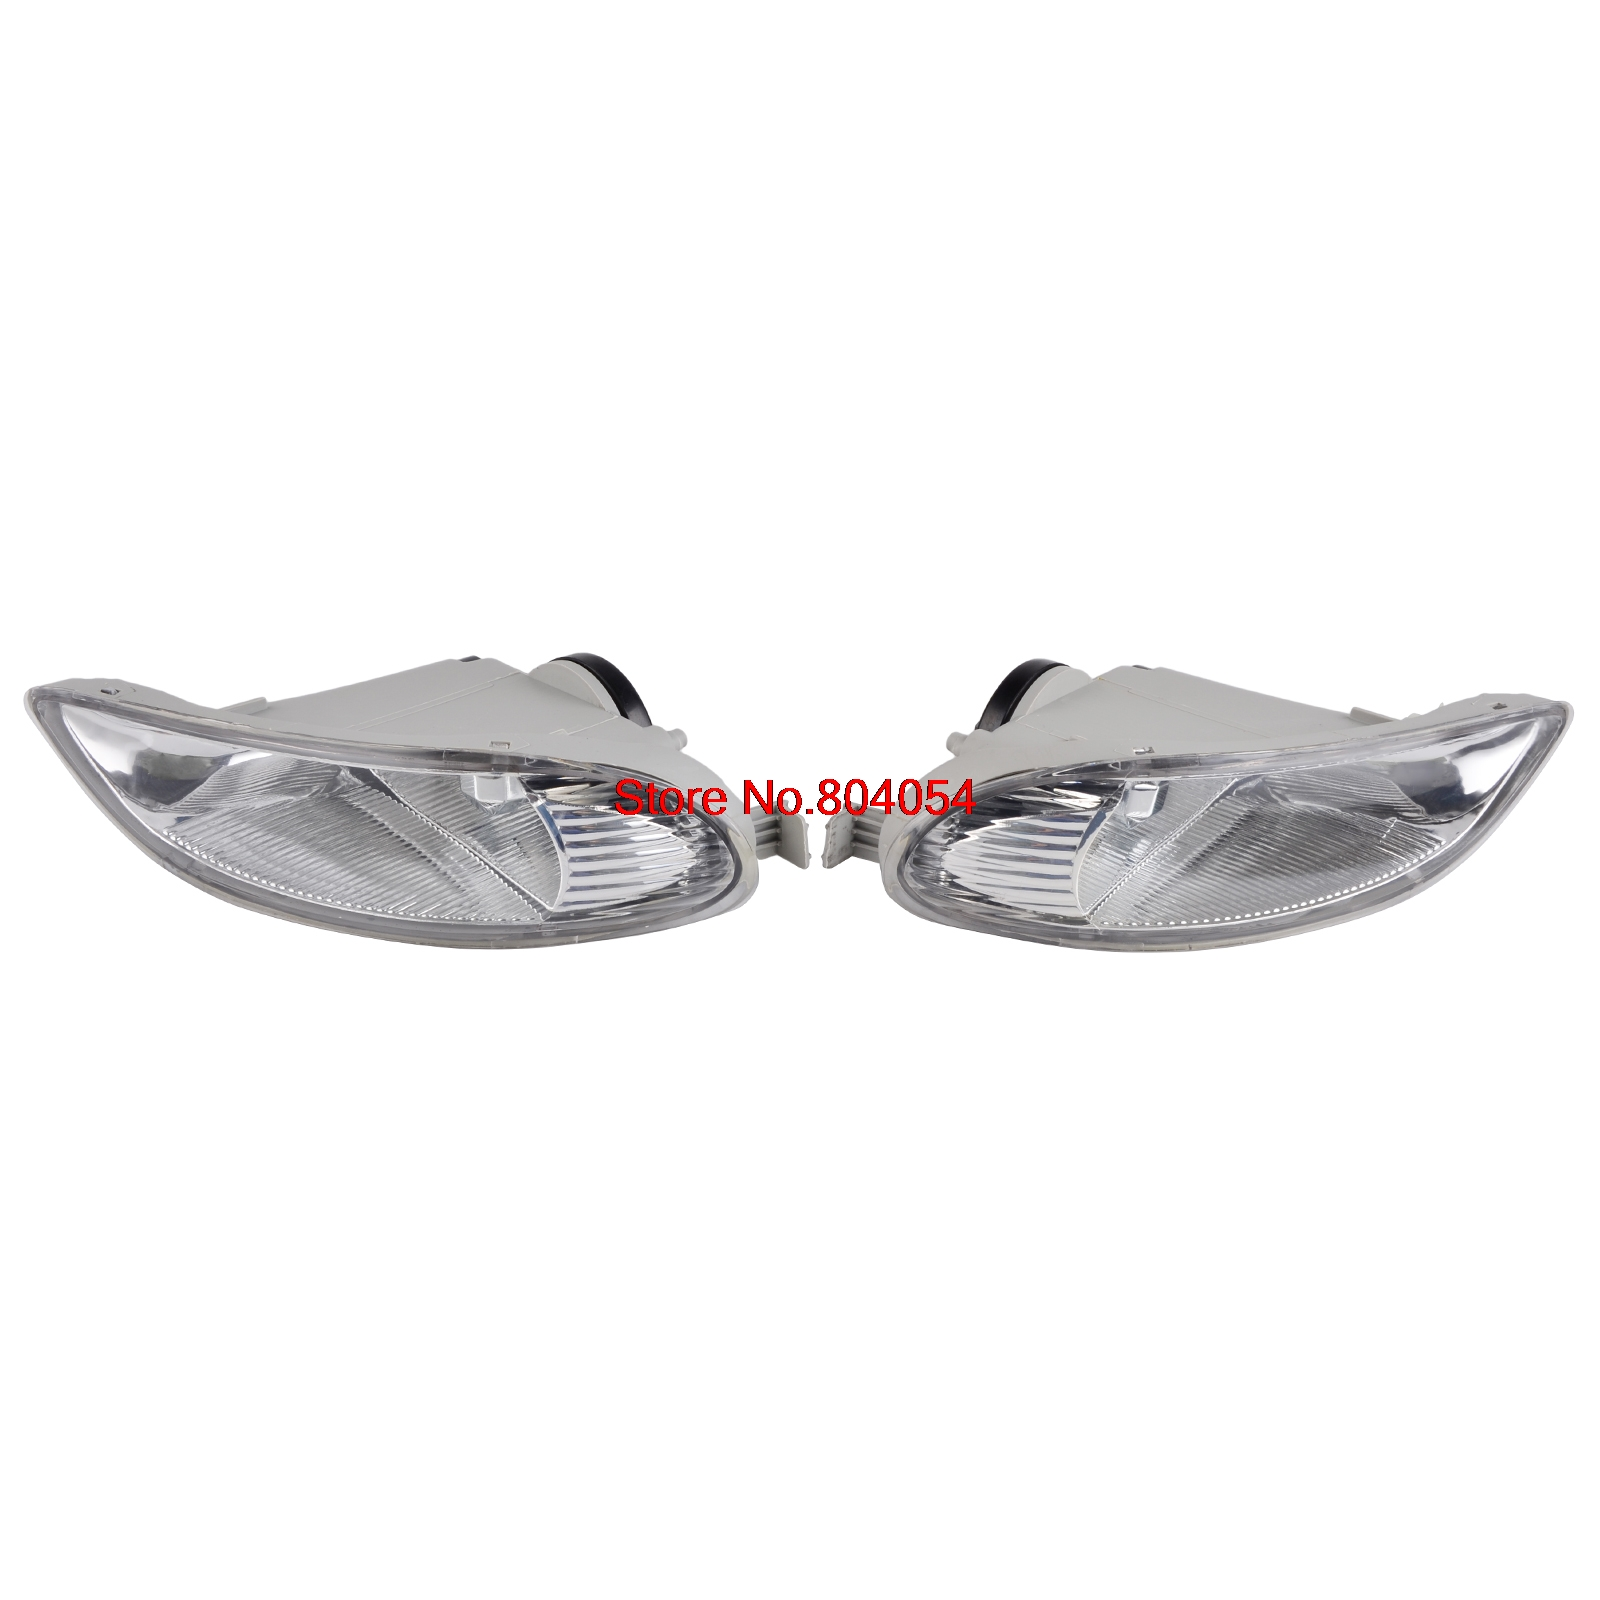 NICECNC A Pair Car Bumper Fog Lights Front Lamps Left & Right For Toyota Corolla 2005-2008 Camry 2002-2004 Solara 2002 2003 2 pcs set car styling front bumper light fog lamps for toyota venza 2009 10 11 12 13 14 81210 06052 left right